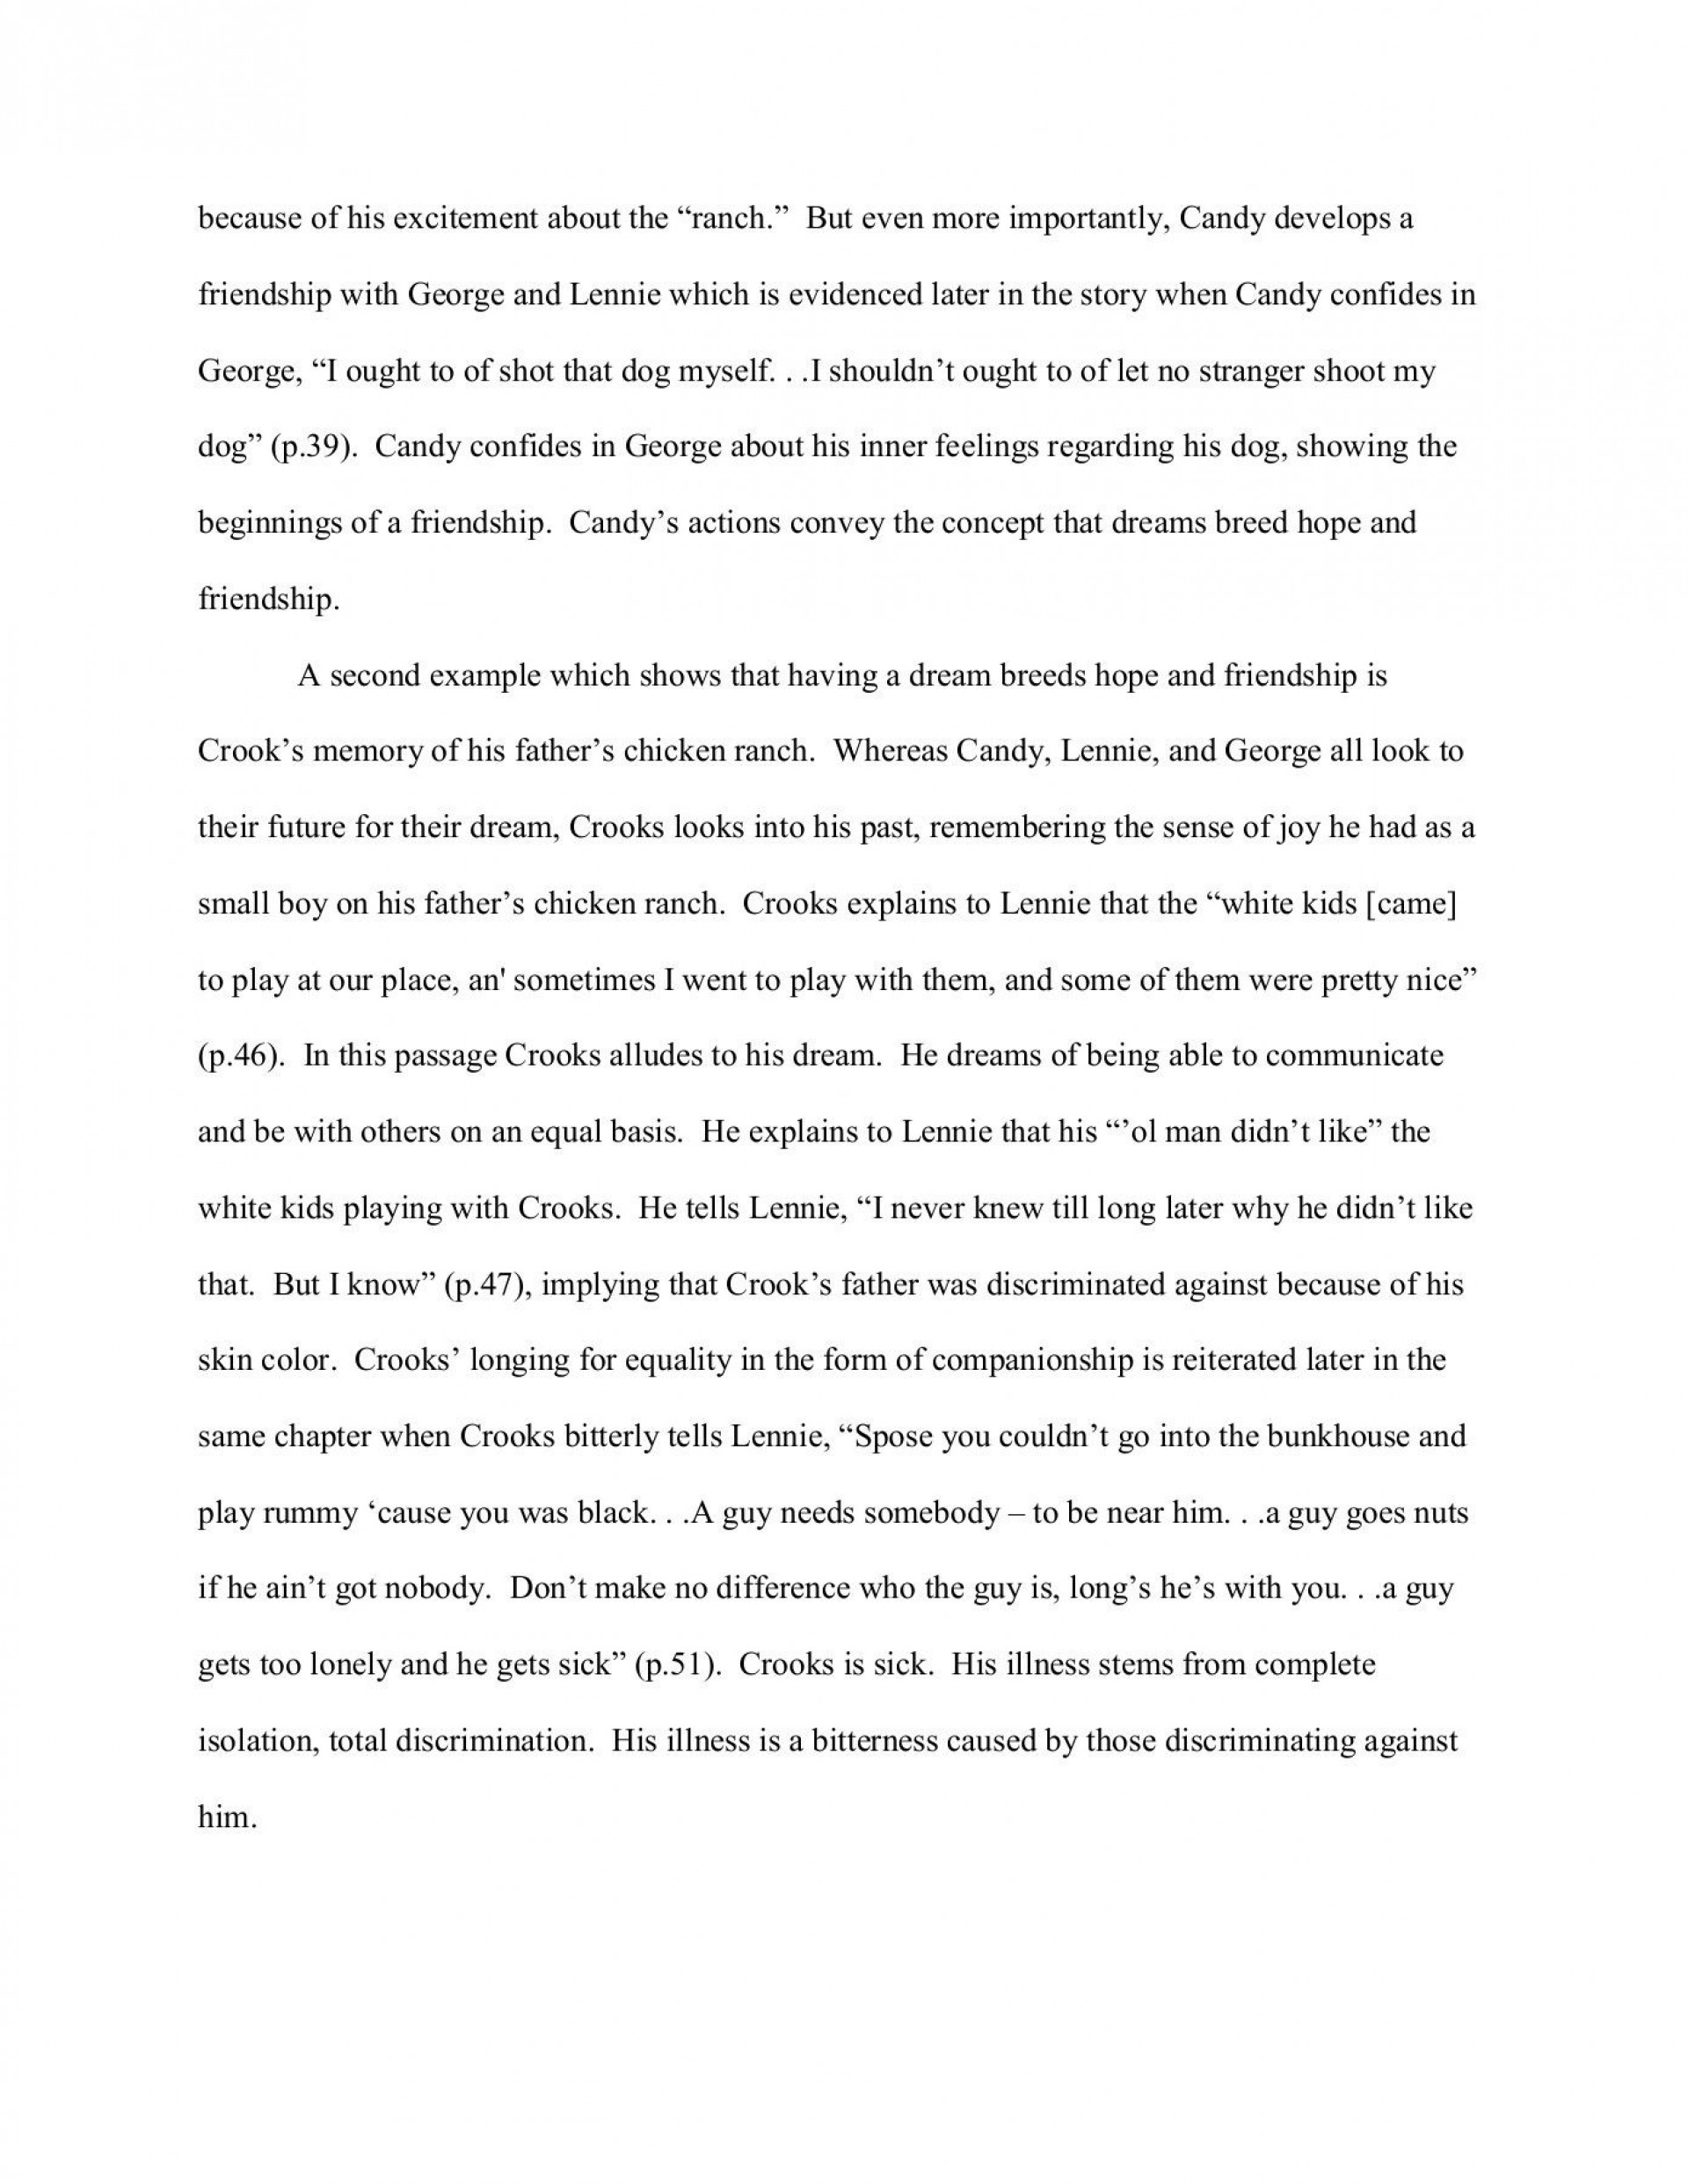 000 Wonderful Of Mice And Men Essay Sample  Prompt Topic1920